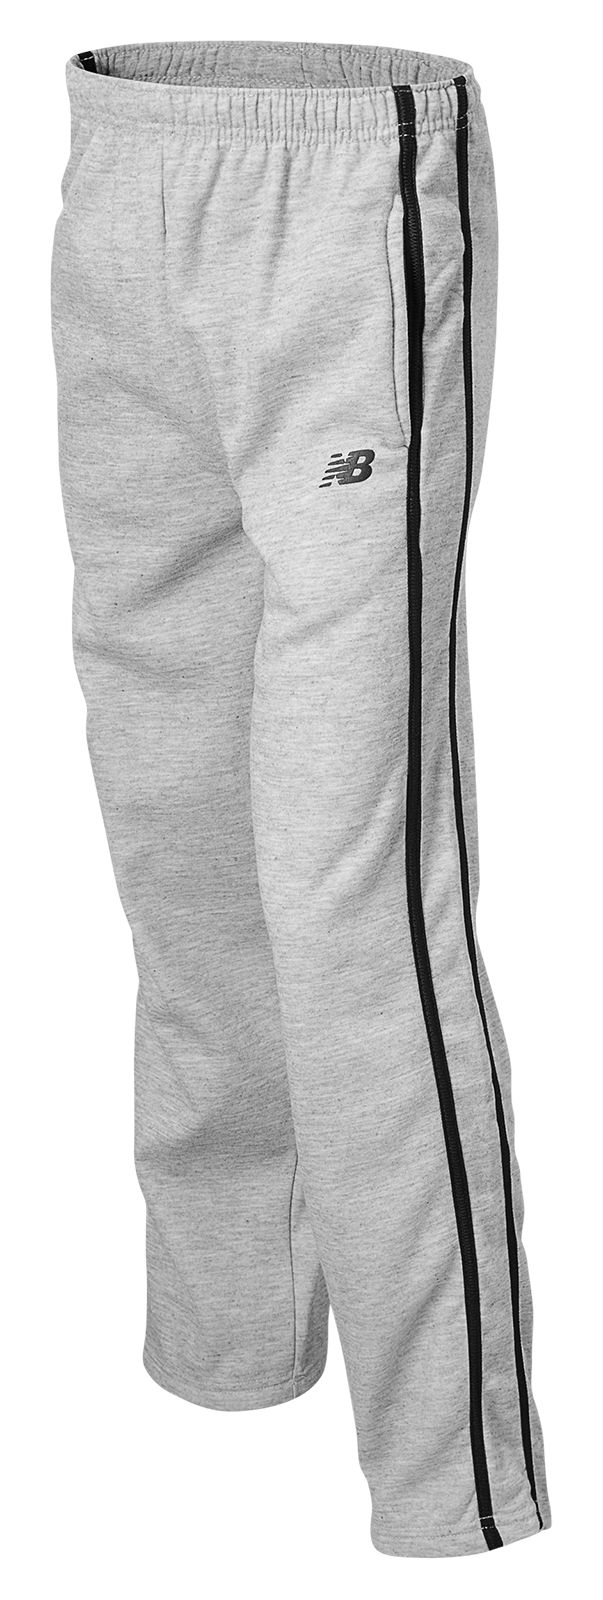 New Balance Youth Fleece Pant Grade - school Boys Grey